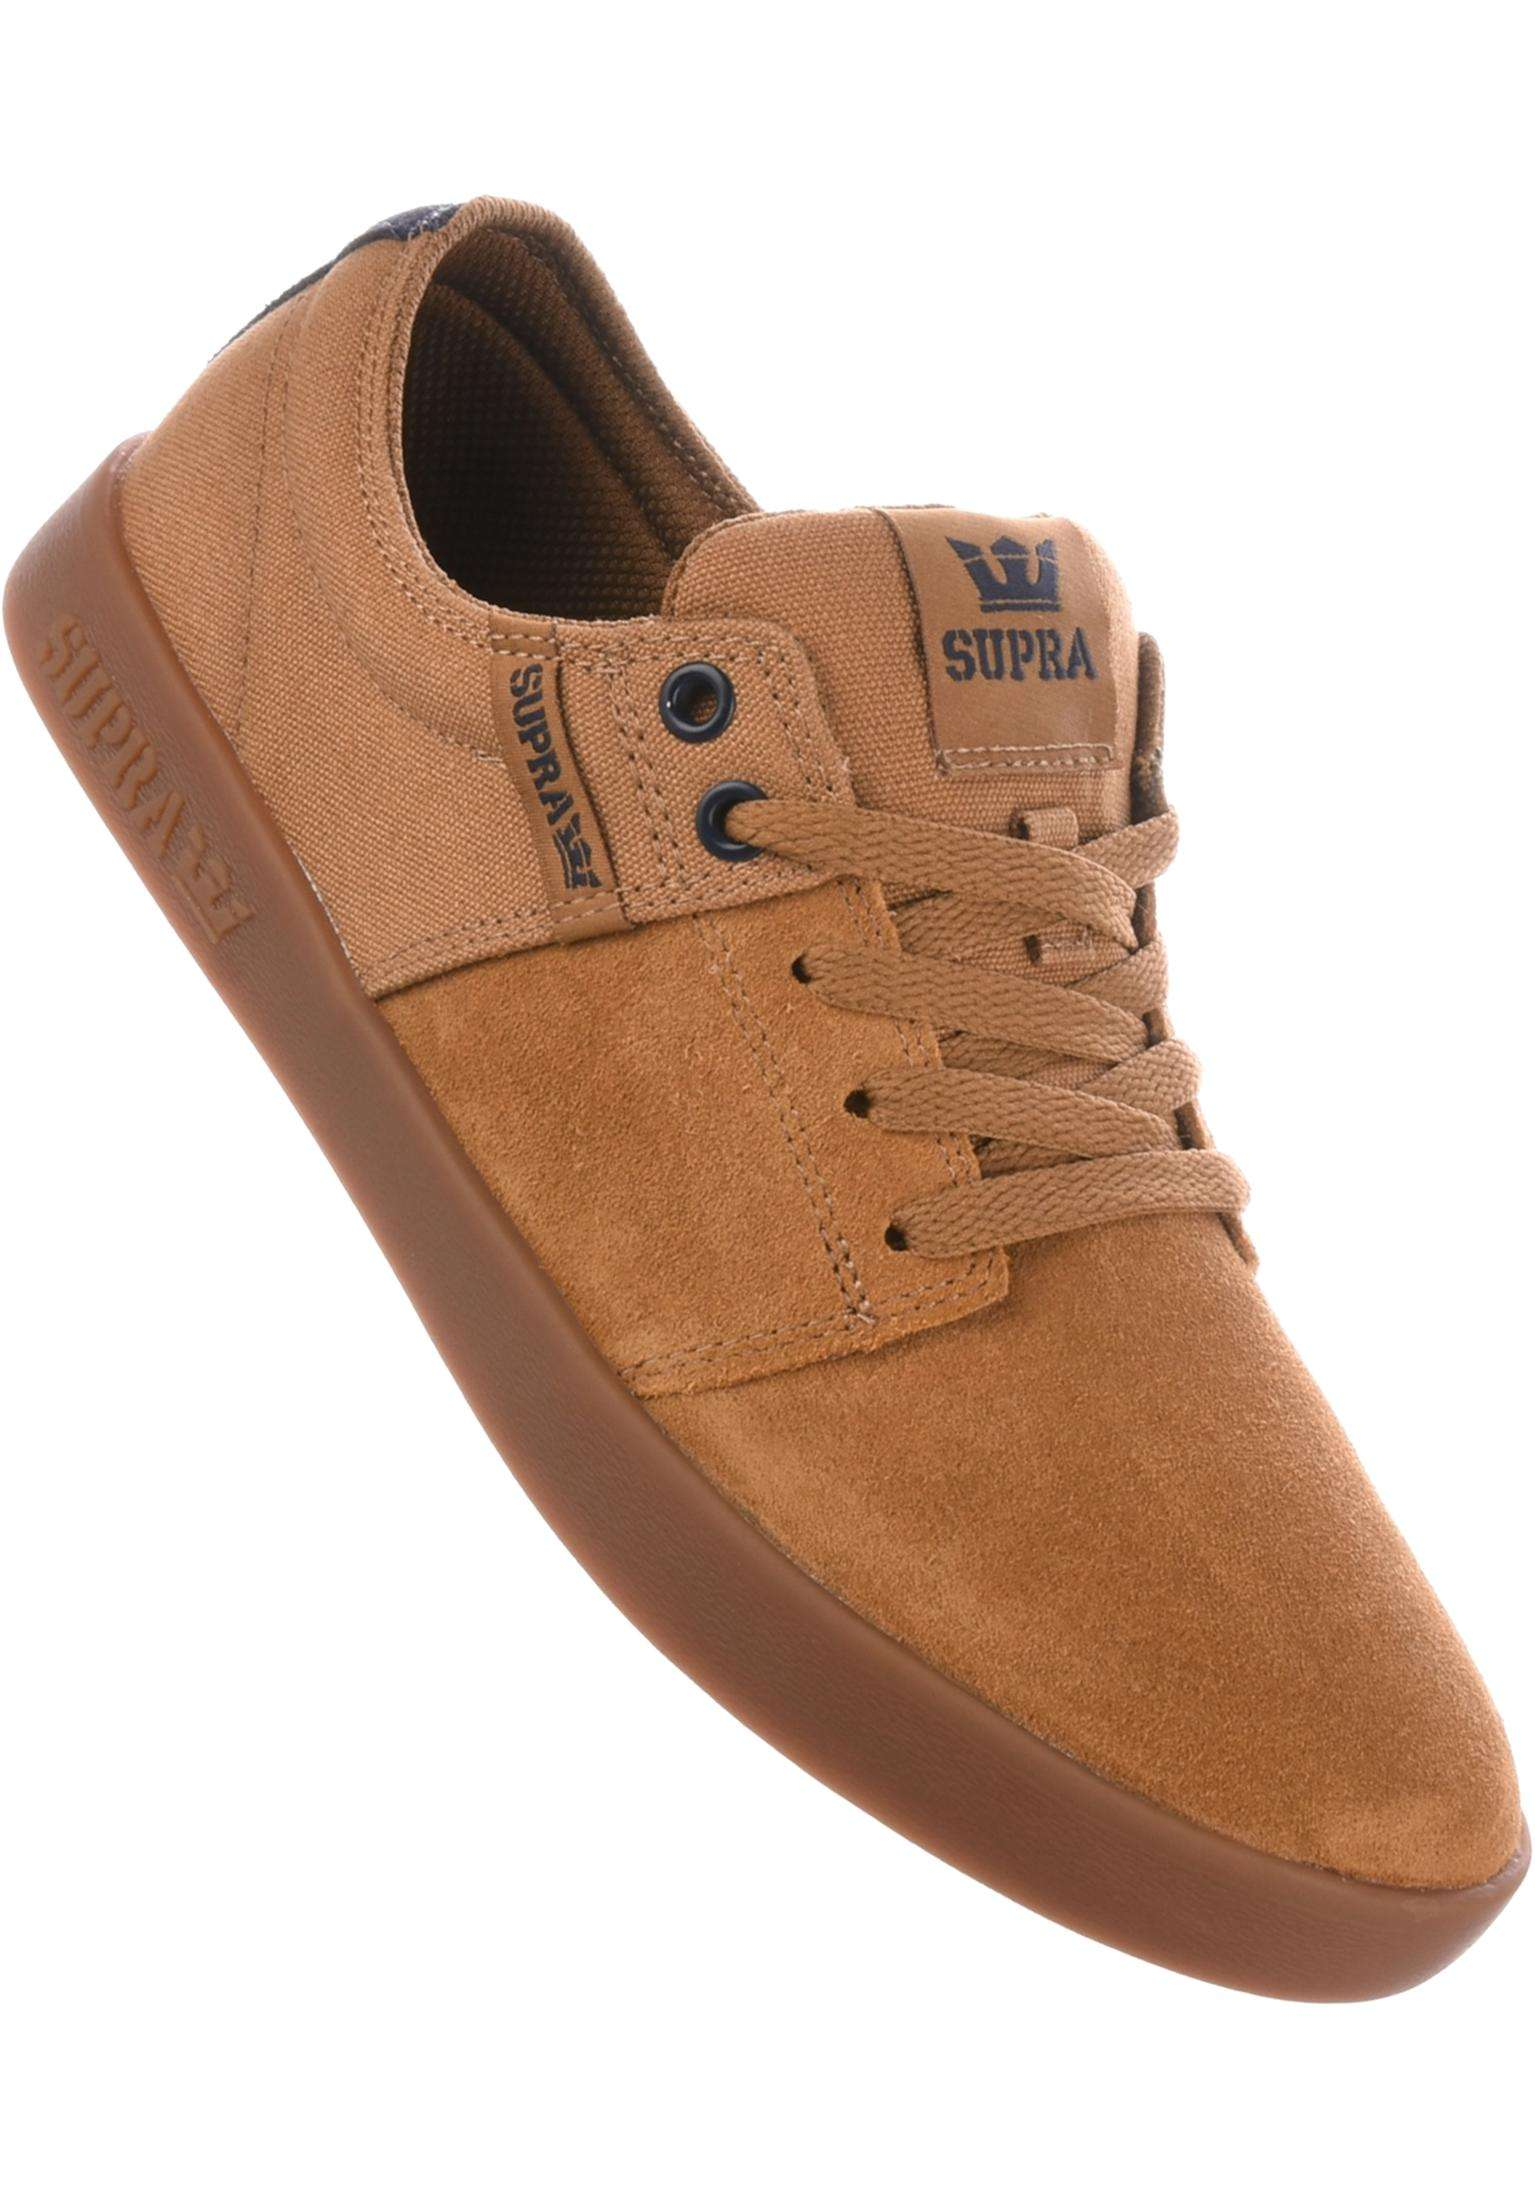 2d254db61077 Stacks II Supra All Shoes in tan-navy-gum for Men